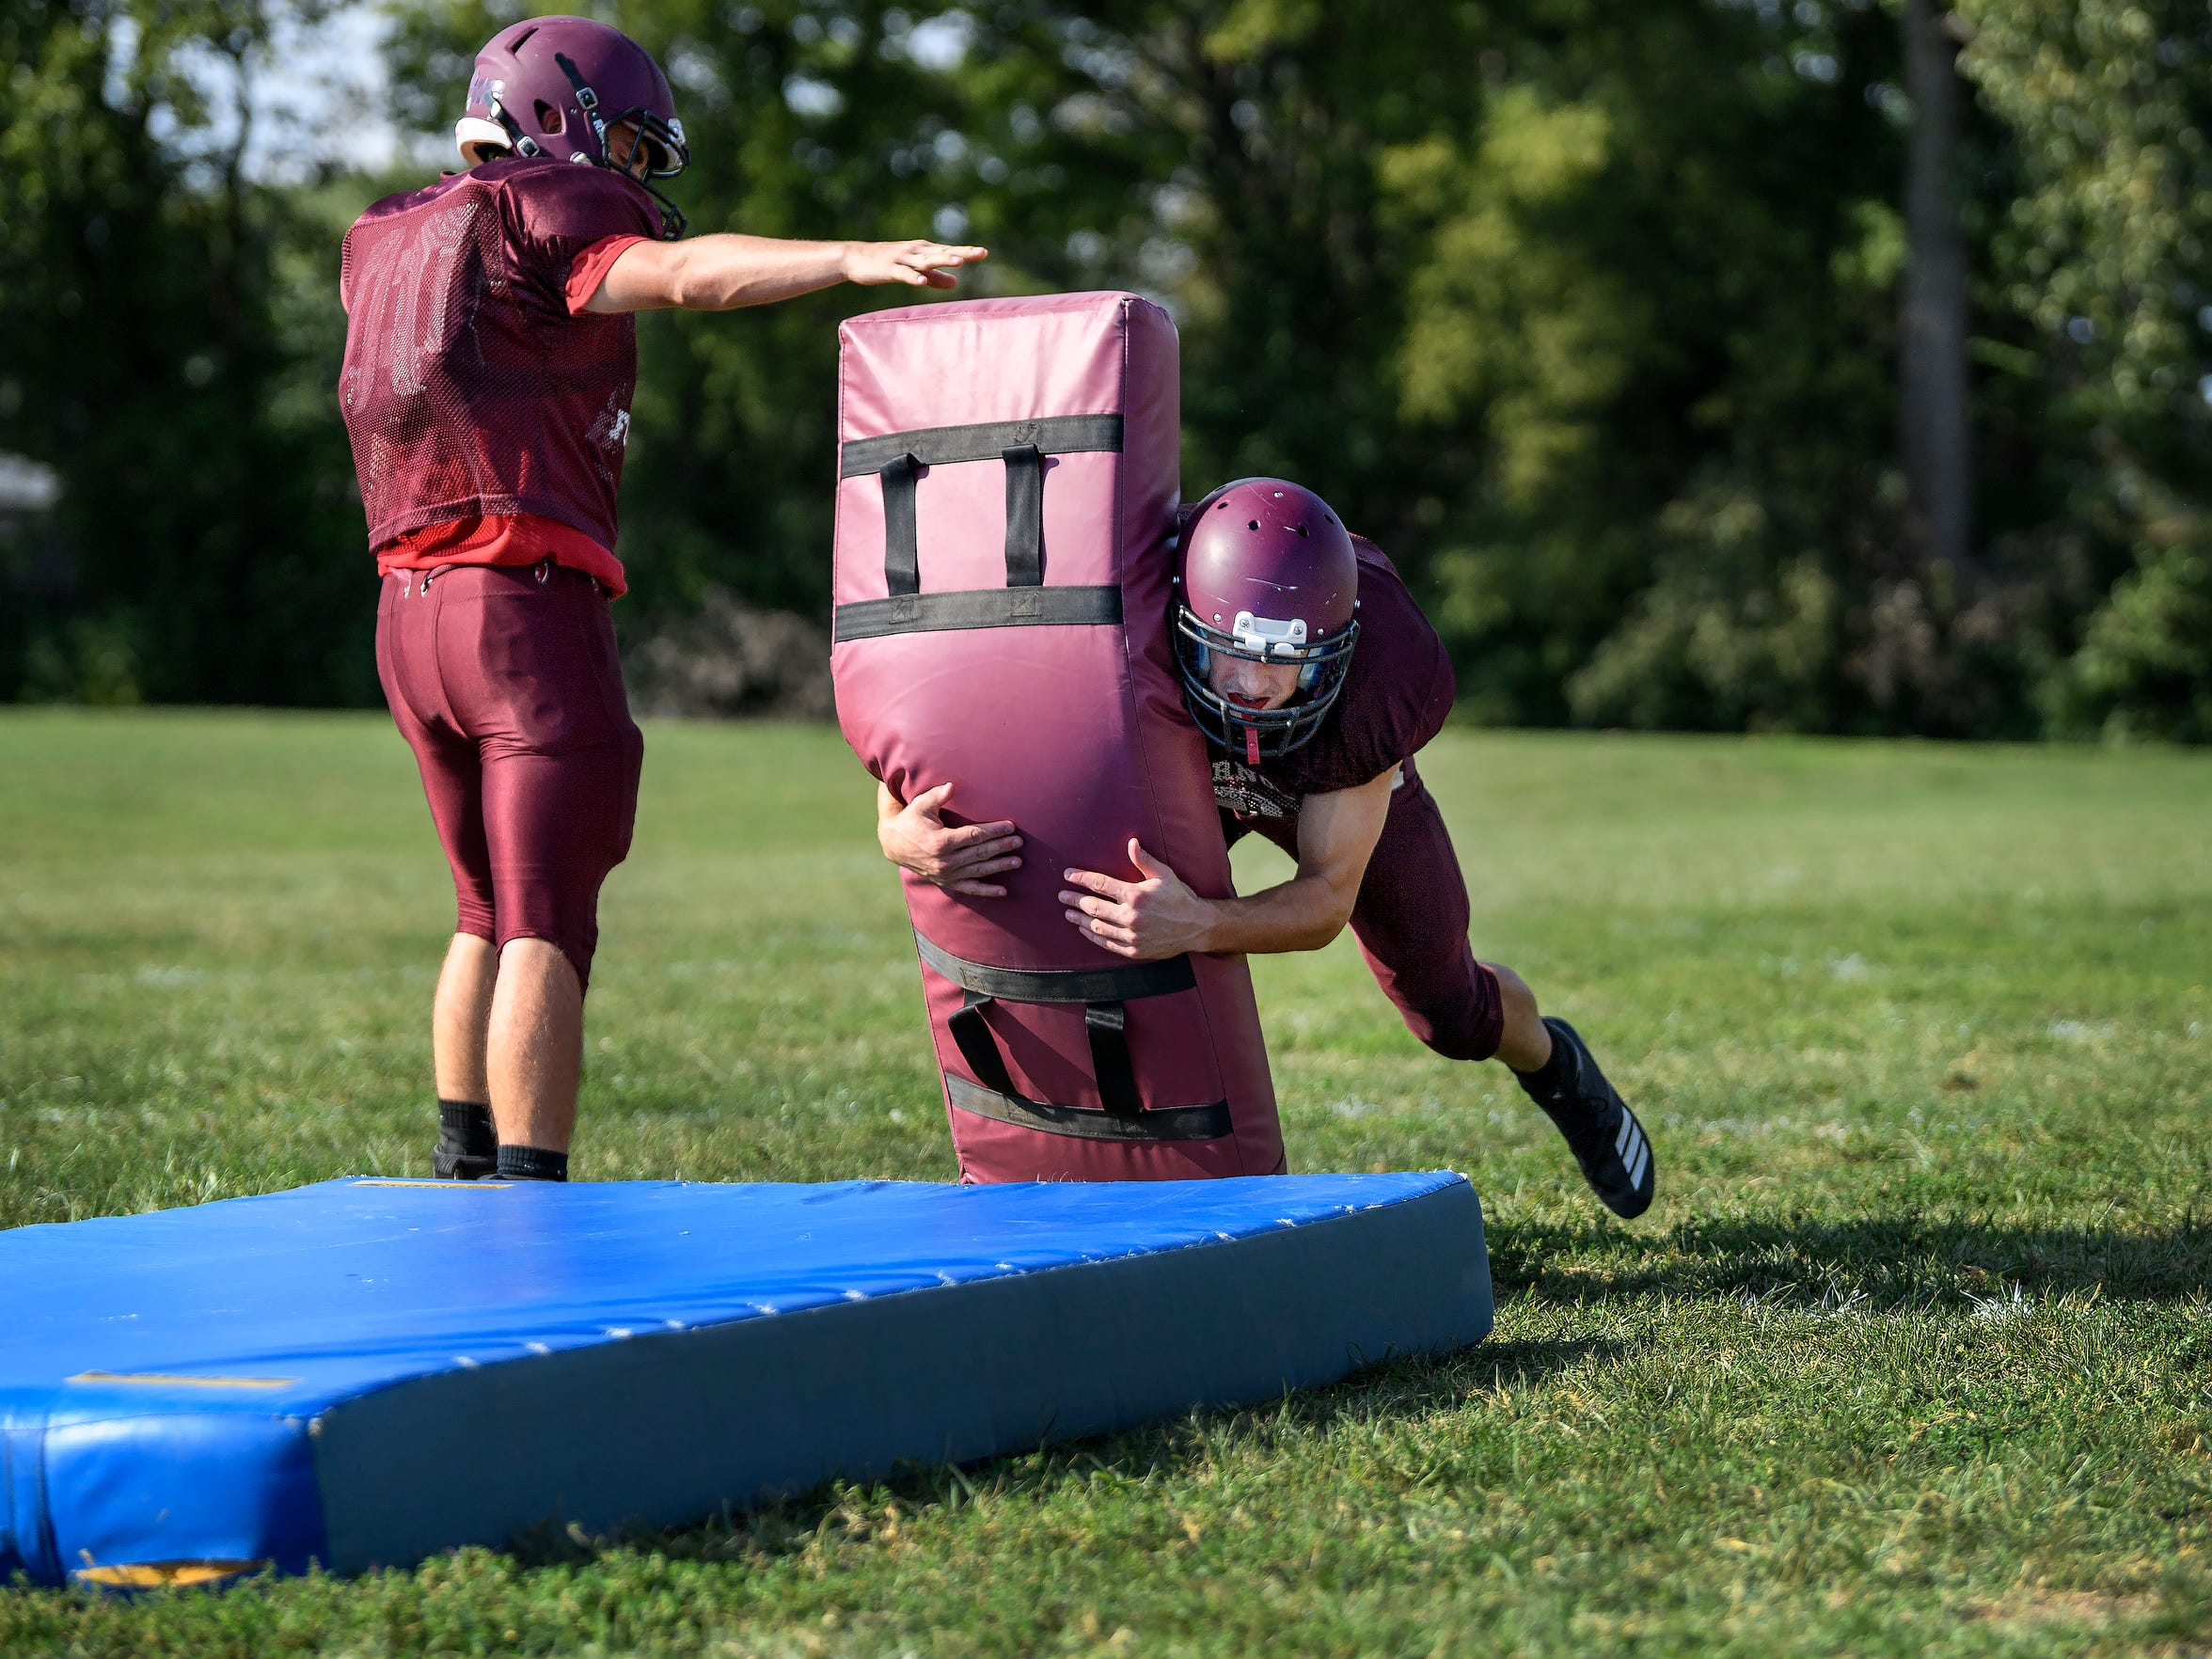 Mt. Vernon's Sam Thomas (12) dives hard into a pad as he practices tackling with his teammates at Mount Vernon High School in Mount Vernon, Ind., Tuesday, Sept. 18, 2018.